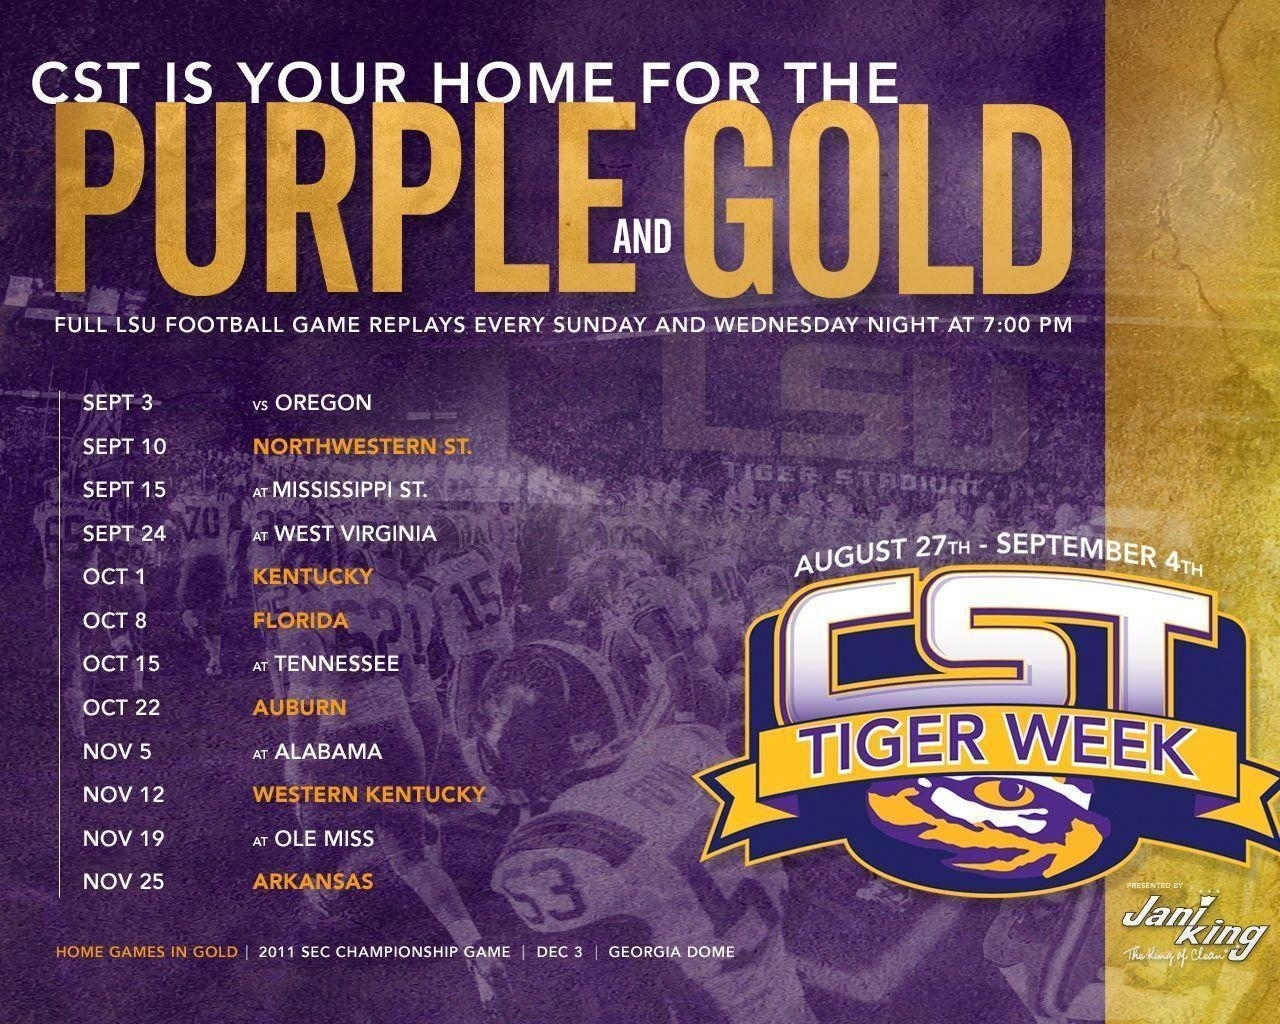 lsu football schedule 2016 wallpapers - wallpaper cave